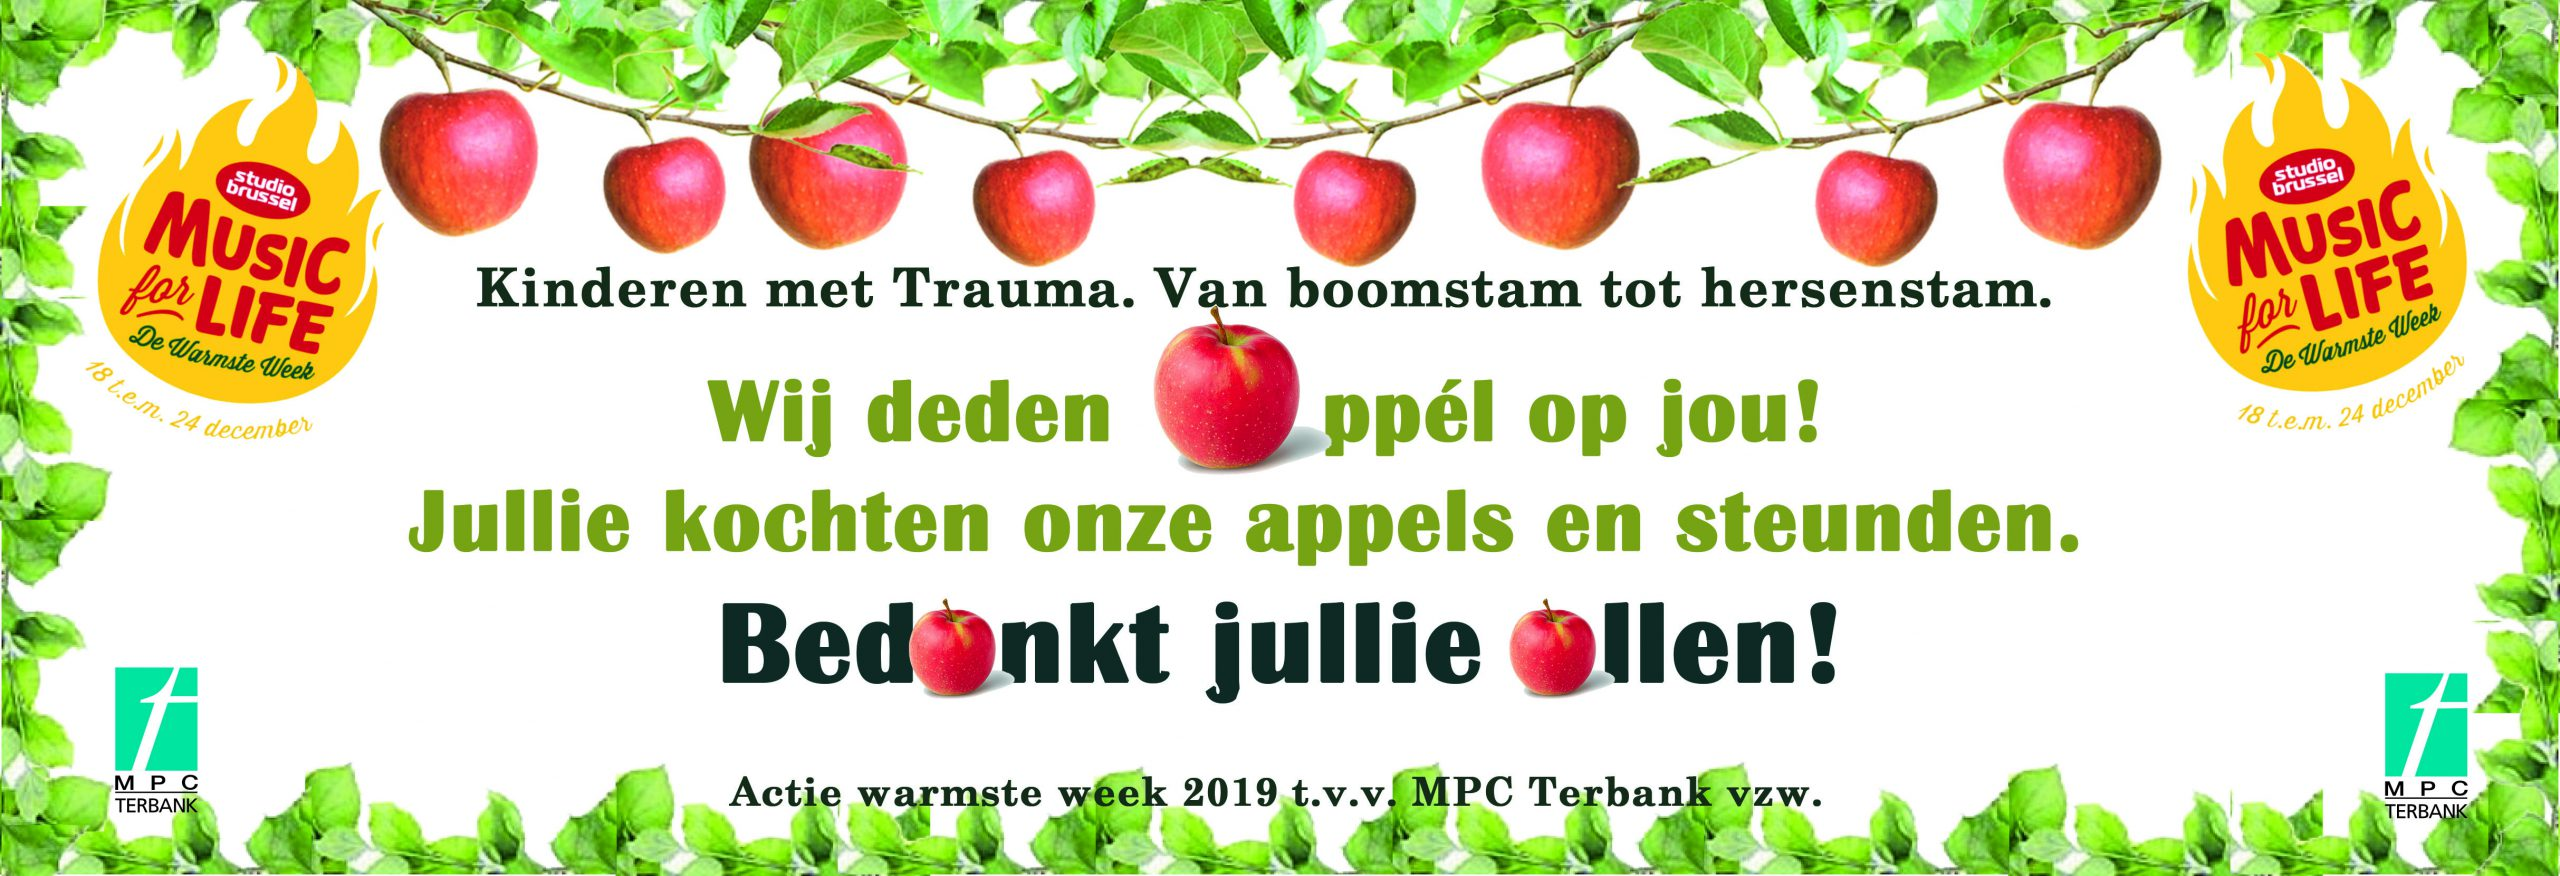 Music for Live actie